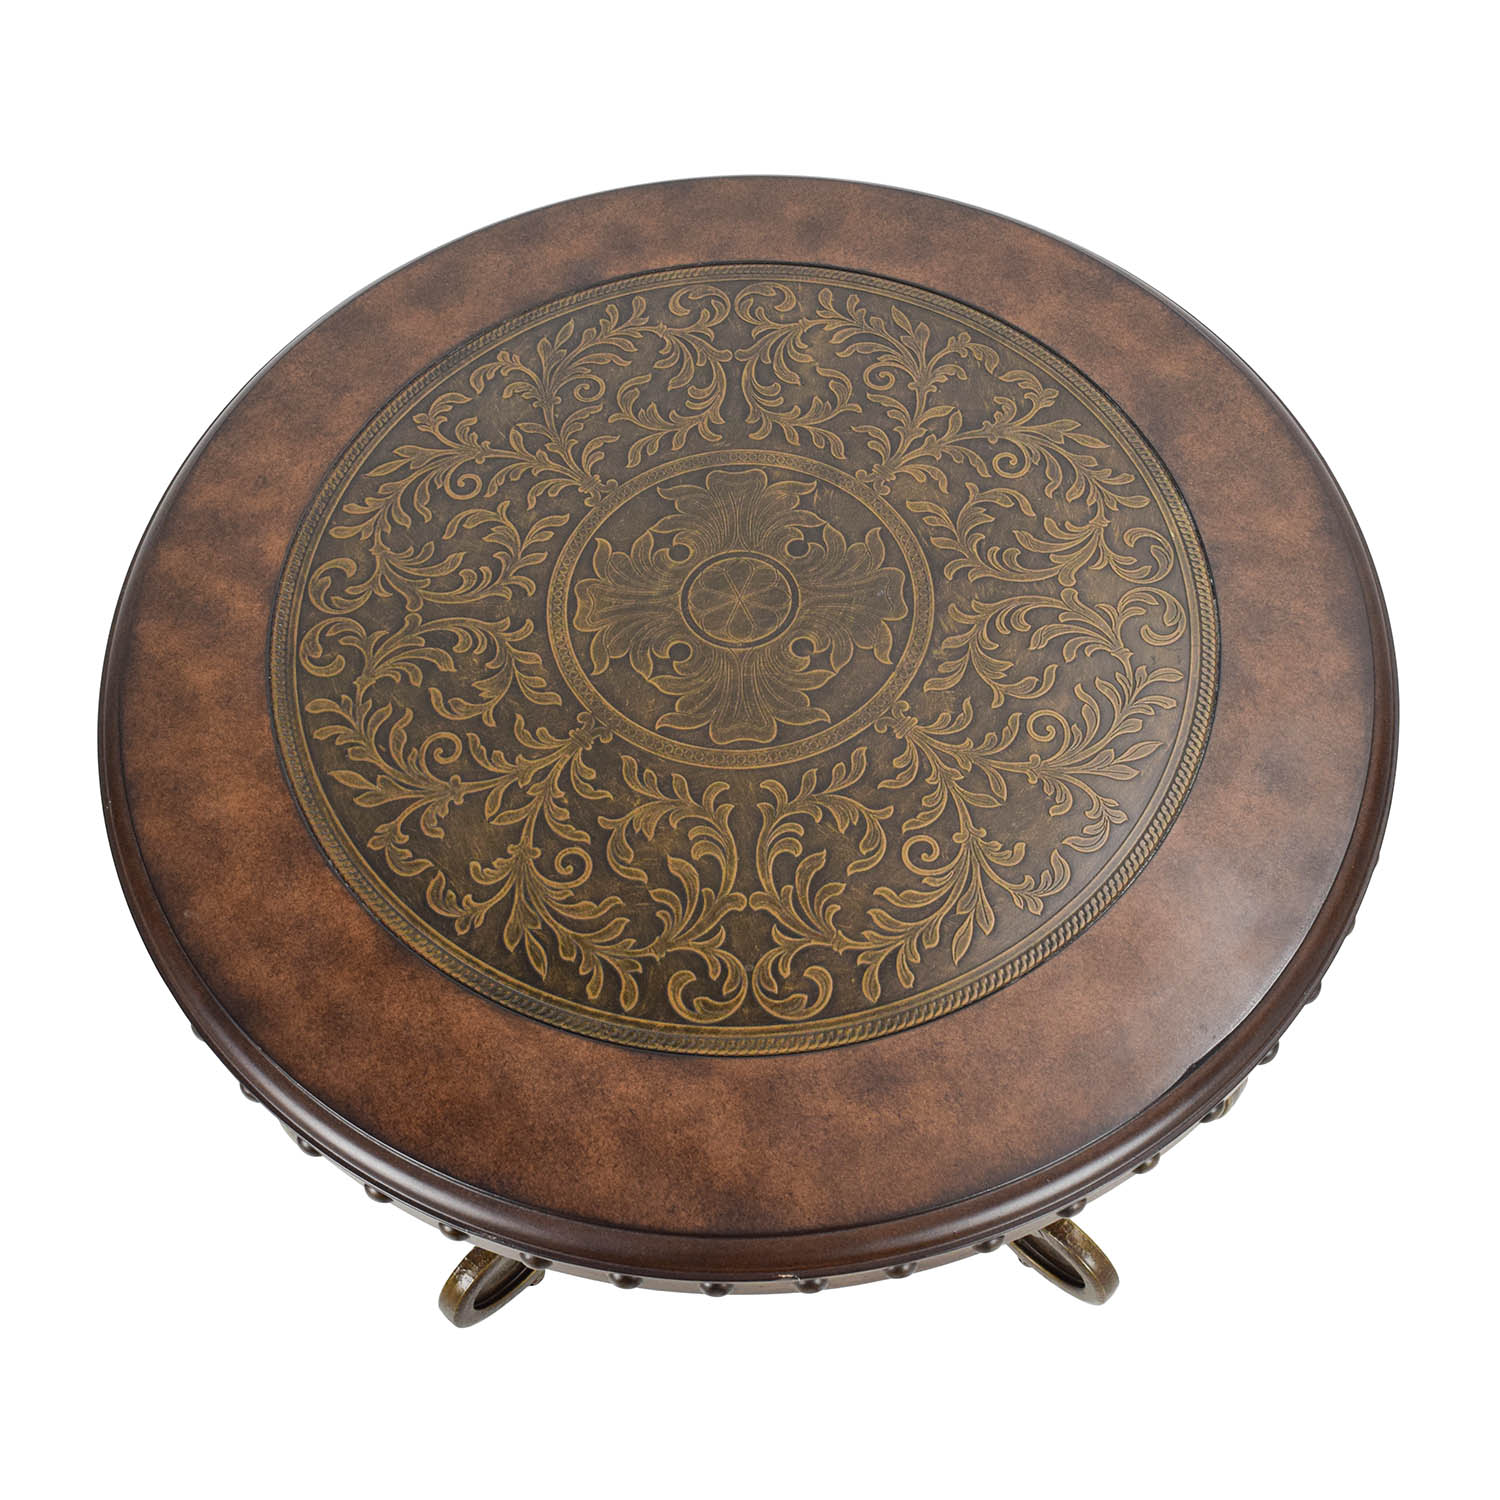 off ashley furniture rafferty round end table tables broyhill locations making dog for large small blue side drum living room ethan allen american impressions curio cabinet when